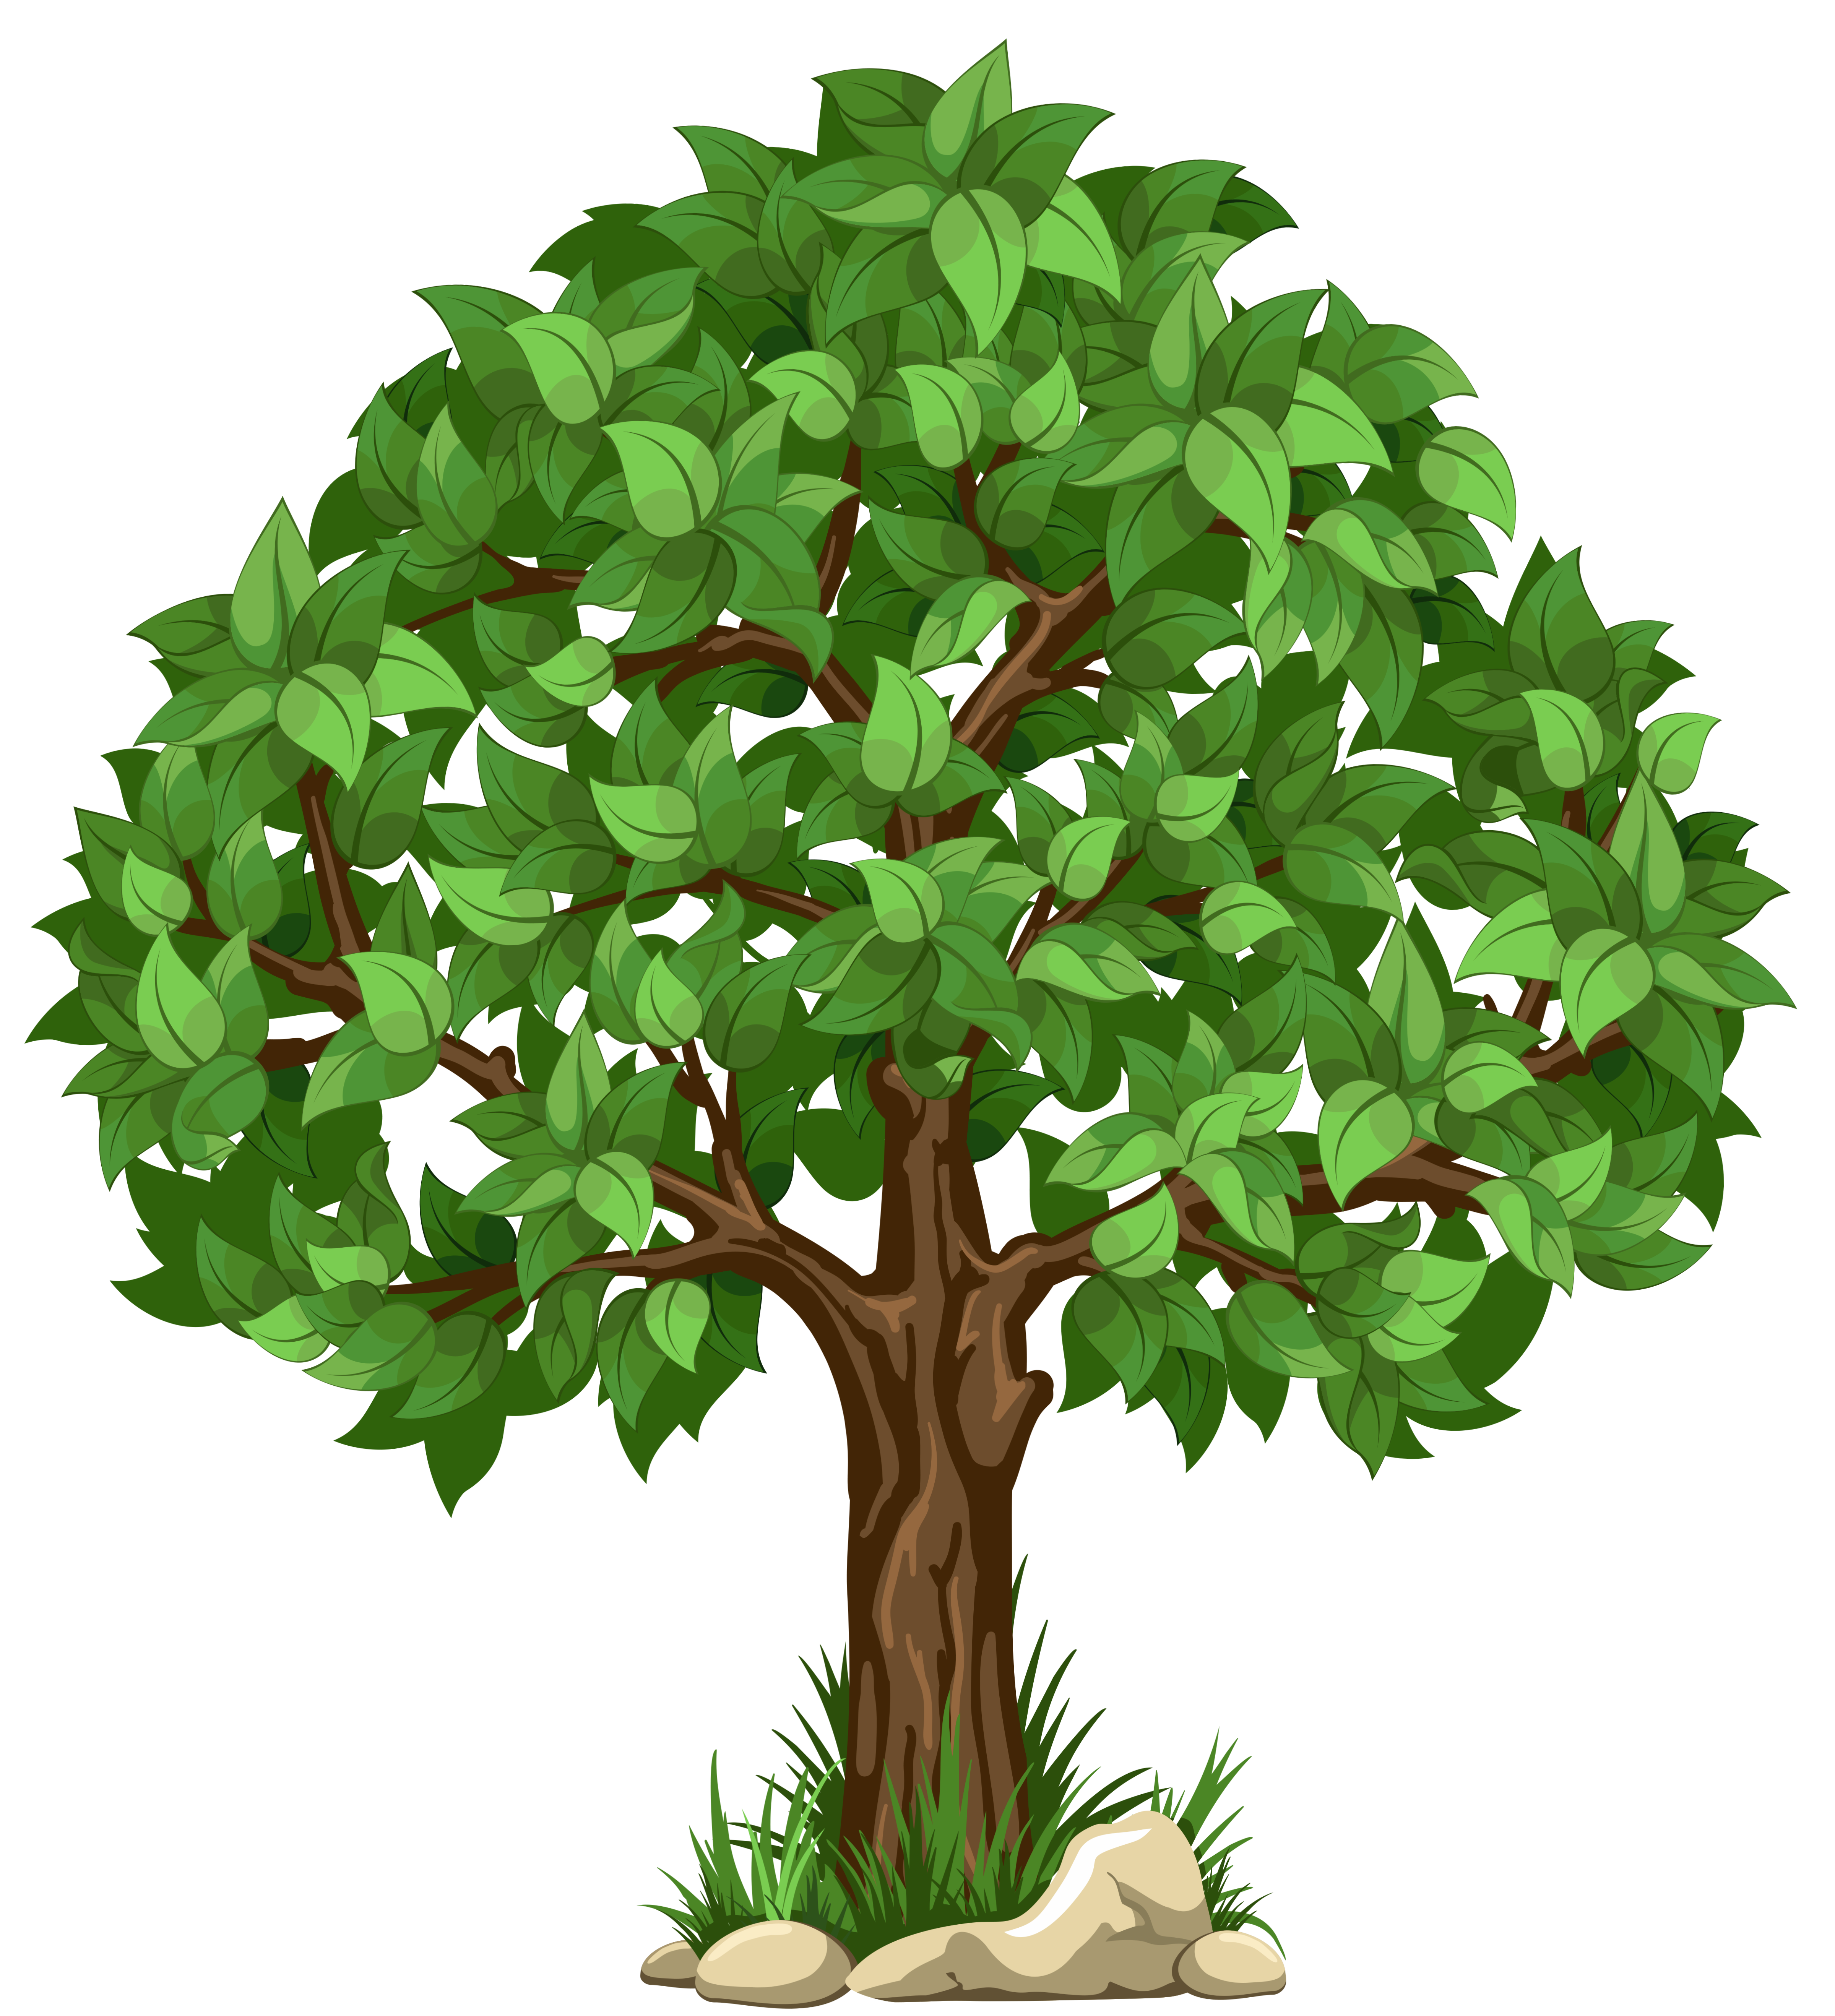 Art mural clipart png clip art royalty free download transparent pics tree #297 | اخرى in 2019 | Clip art, Tree clipart ... clip art royalty free download